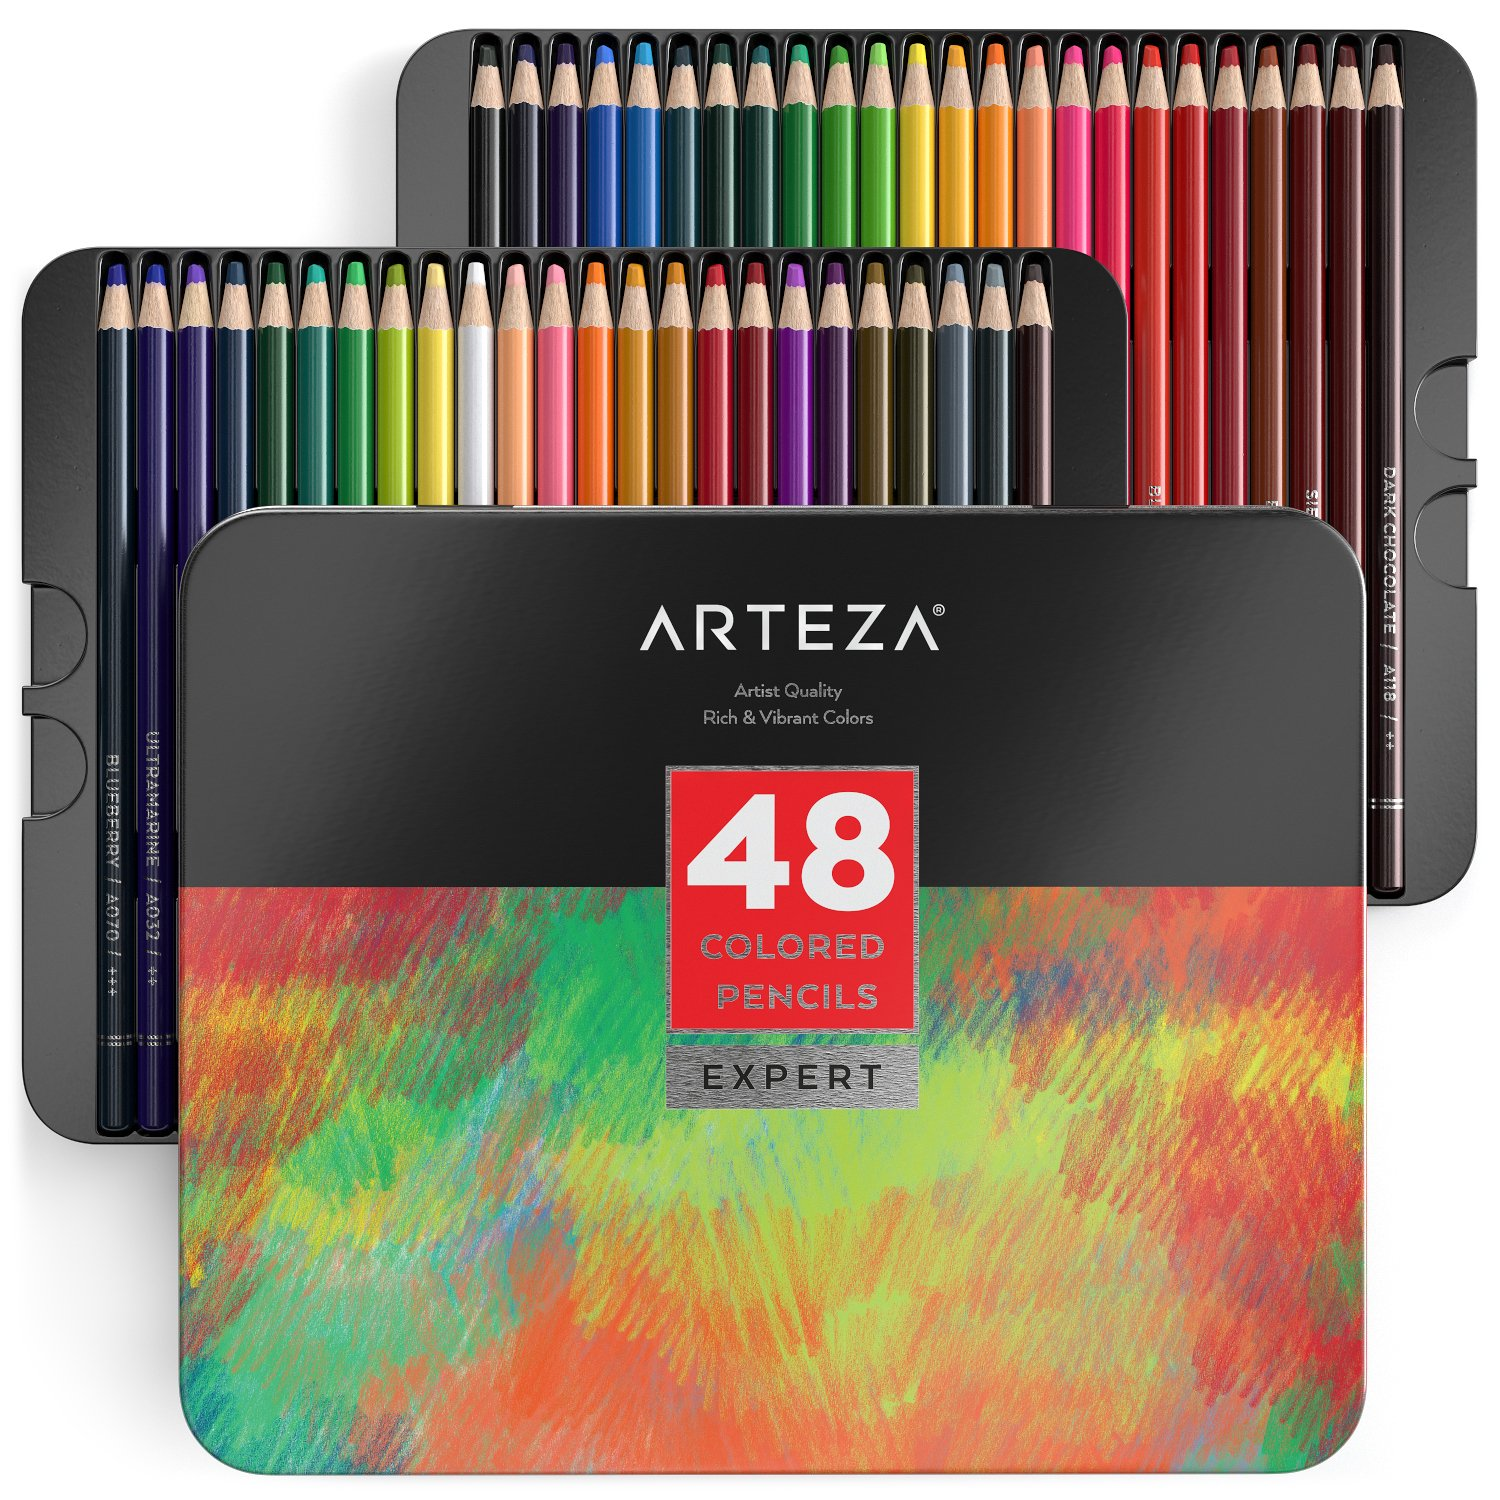 Arteza Professional Colored Pencils (Set of 48)